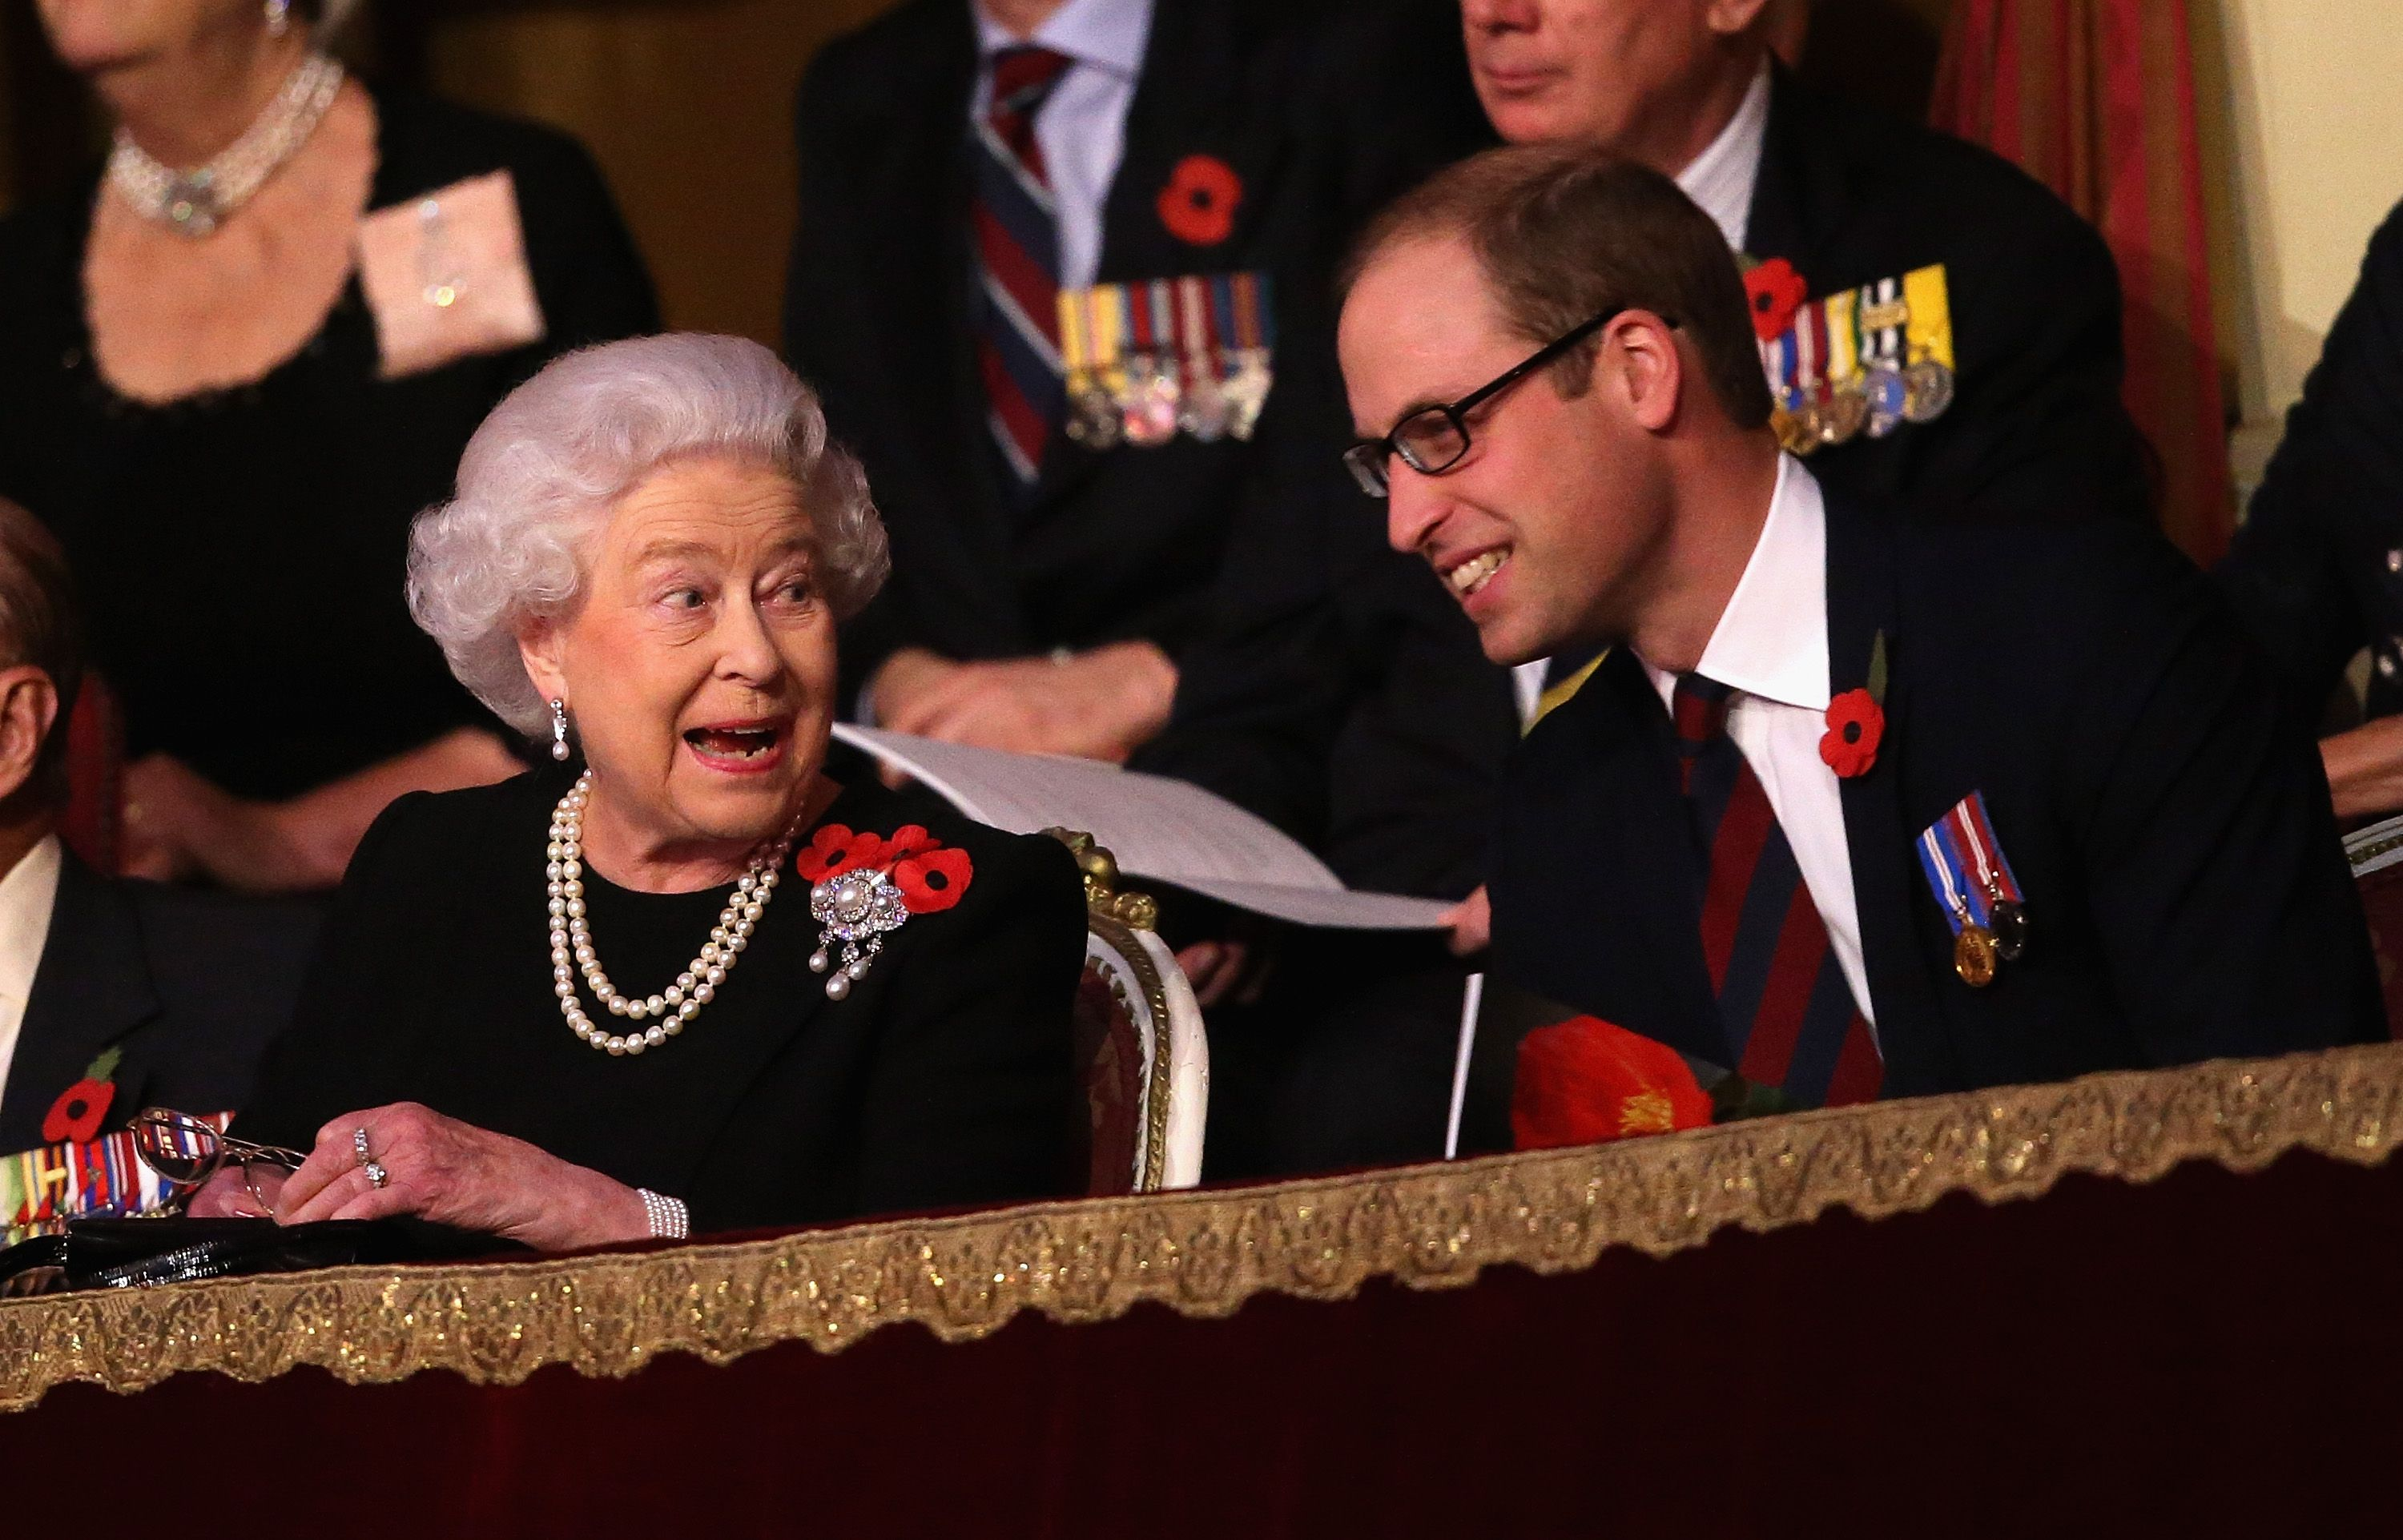 Prince William has been given a brand new title by the Queen